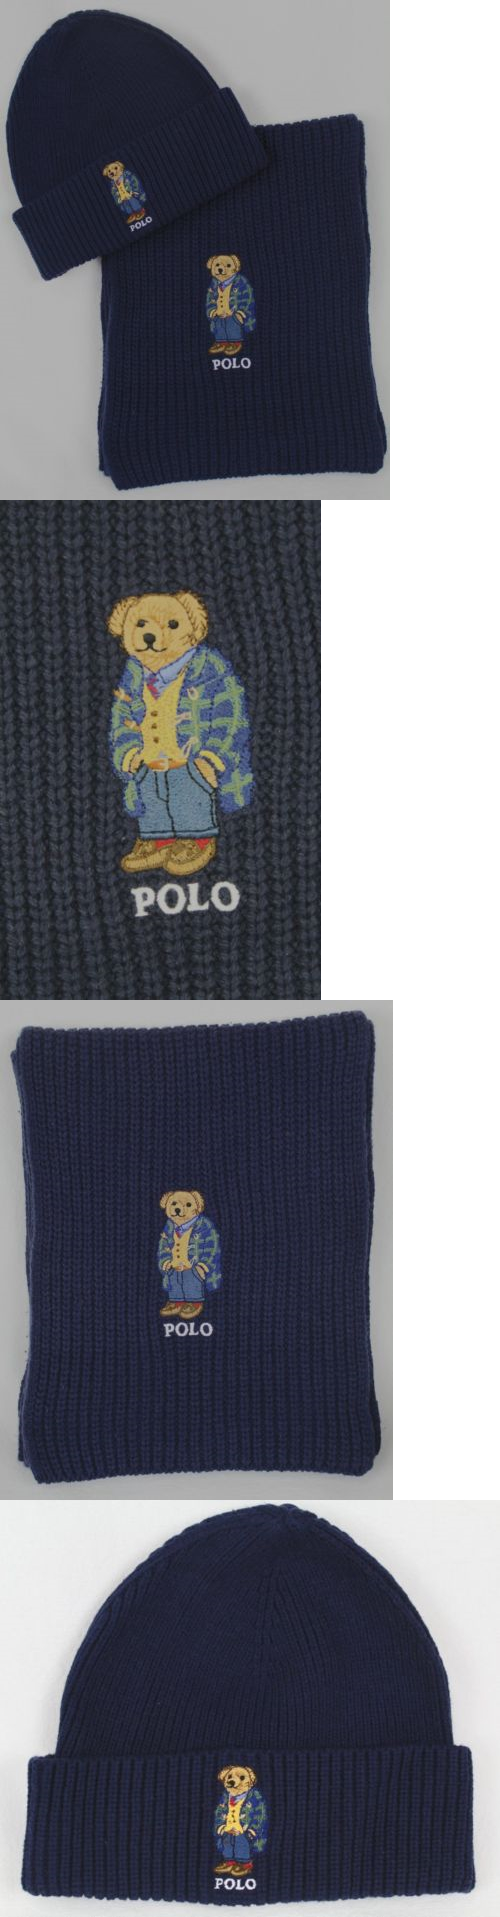 969ffd8e3da54 Scarves 52382  Polo Ralph Lauren Collectable Navy Blue Teddy Bear Scarf  Beanie Hat Set Nwt -  BUY IT NOW ONLY   118.99 on eBay!